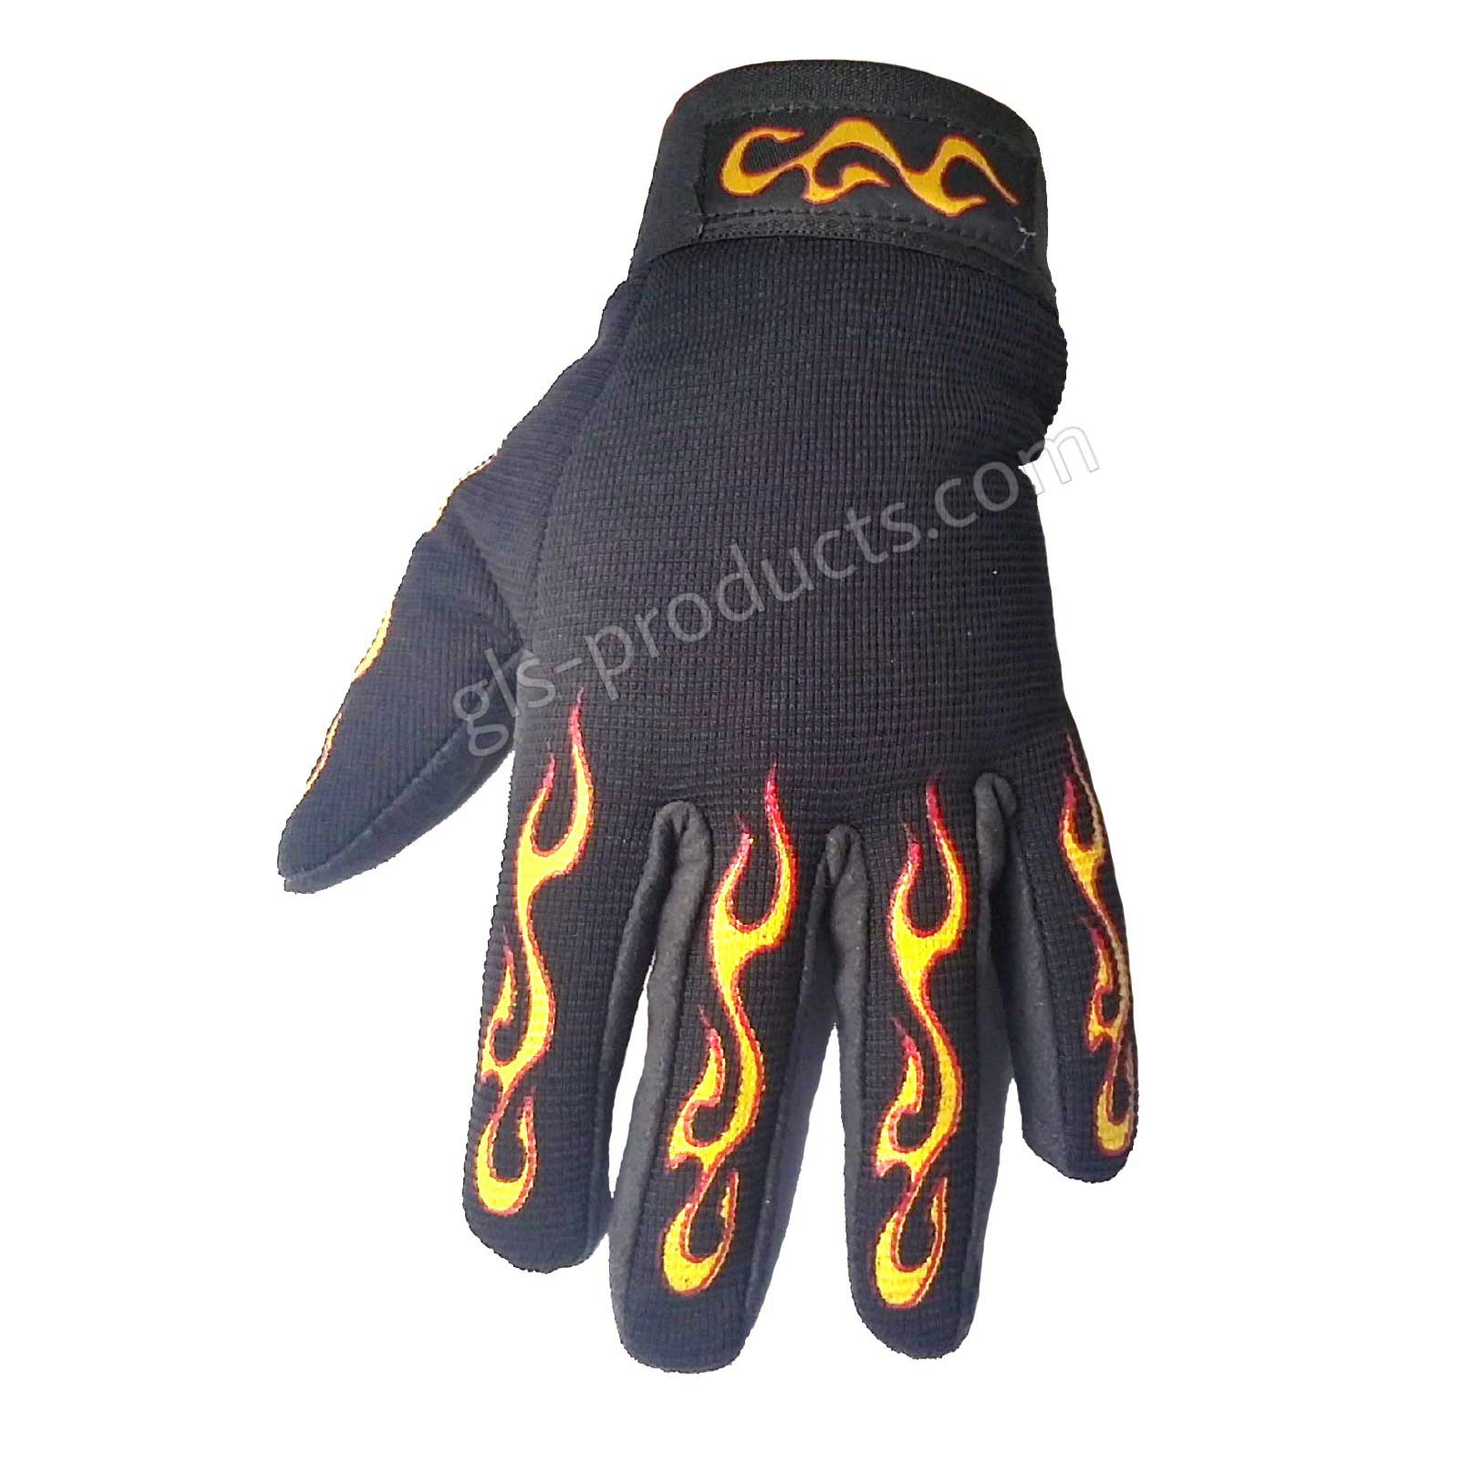 Mechanic Gloves, Flexible Neoprene Gloves – Picture 4